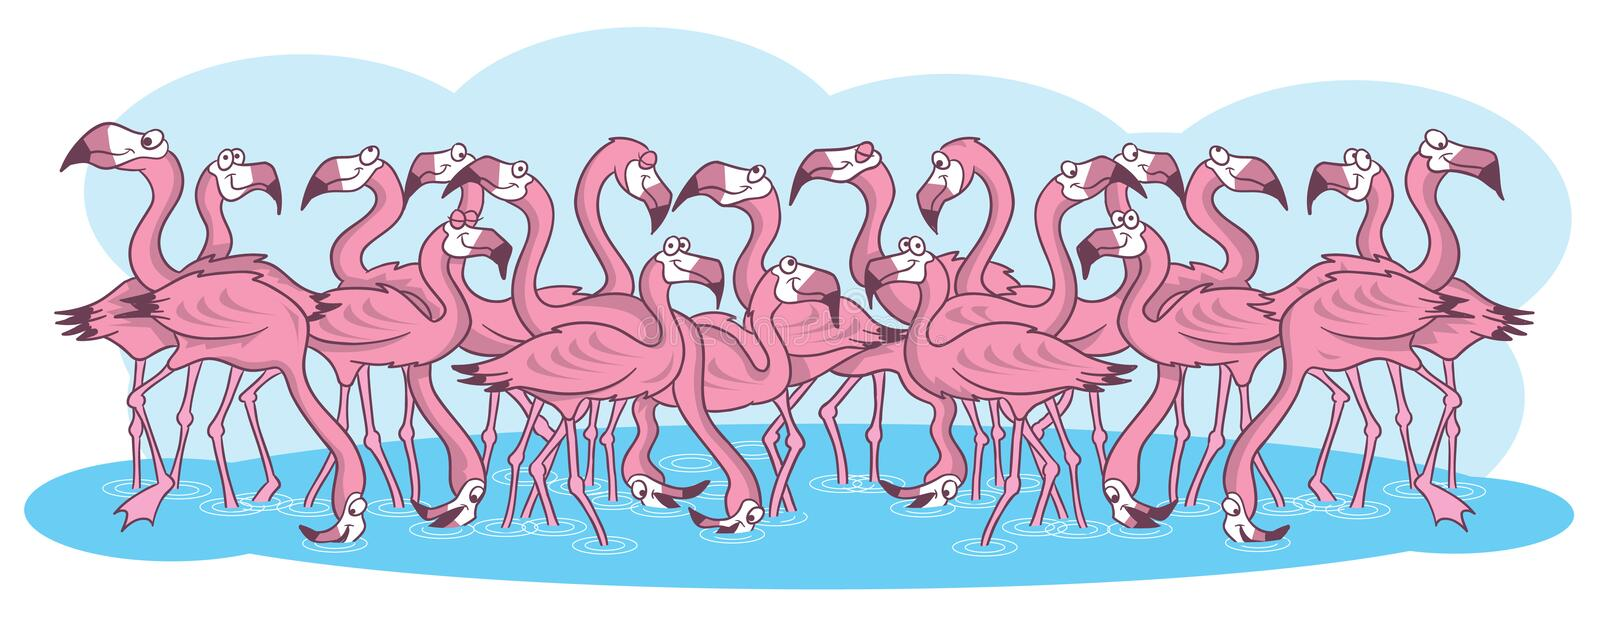 Pink flamingos cartoon illustration vector illustration